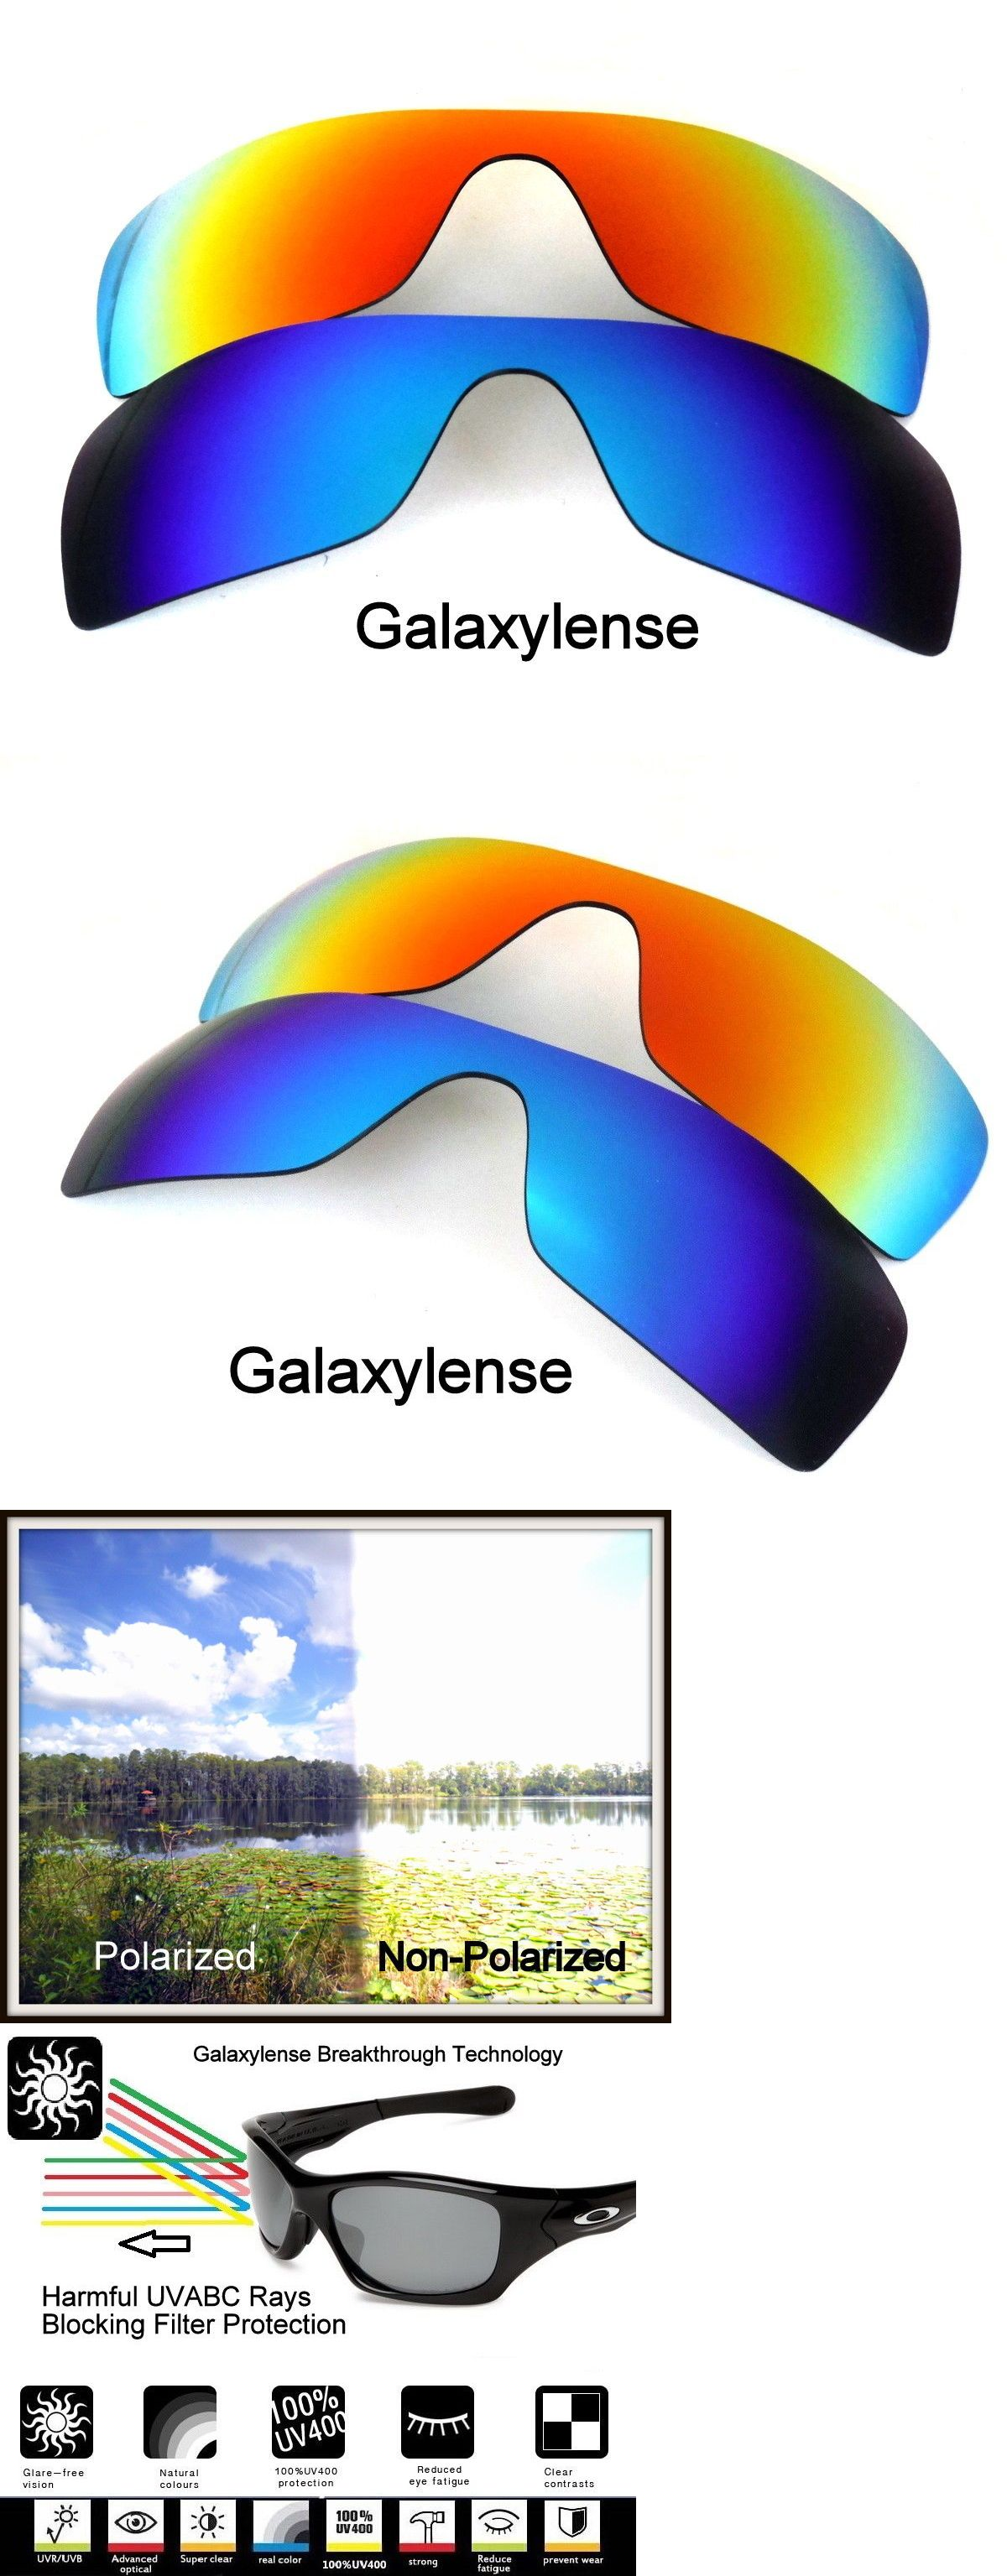 Replacement Lenses and Parts 179194  Galaxy Replacement Lenses For Oakley  Batwolf Blueandred Polarized 100%Uvab 2 Pairs -  BUY IT NOW ONLY   15.48 on   eBay ... fcd42fbdf677